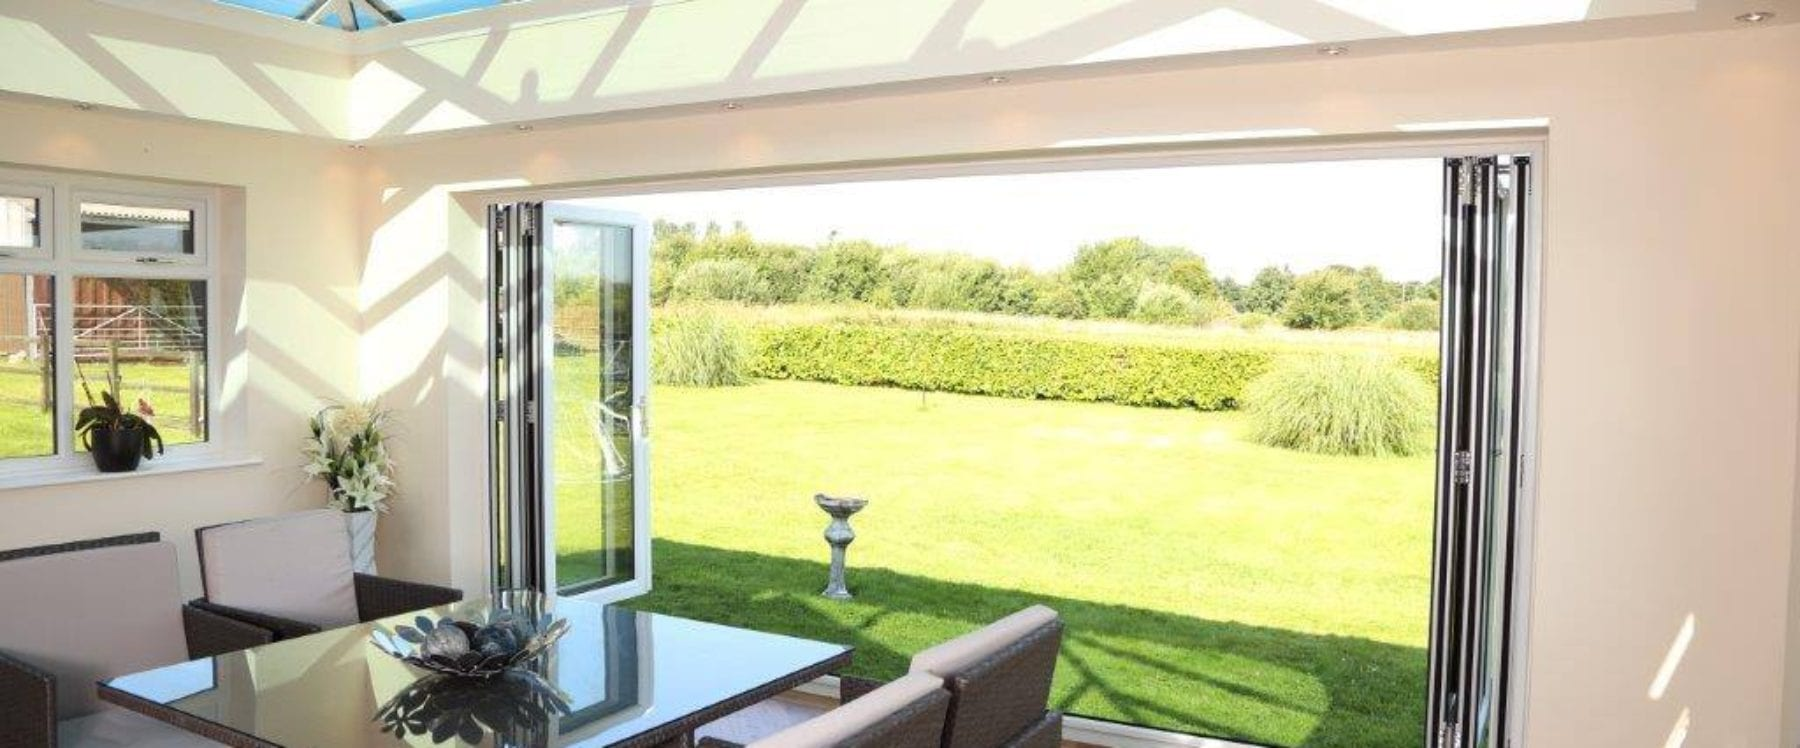 Open Bifold Doors into Garden